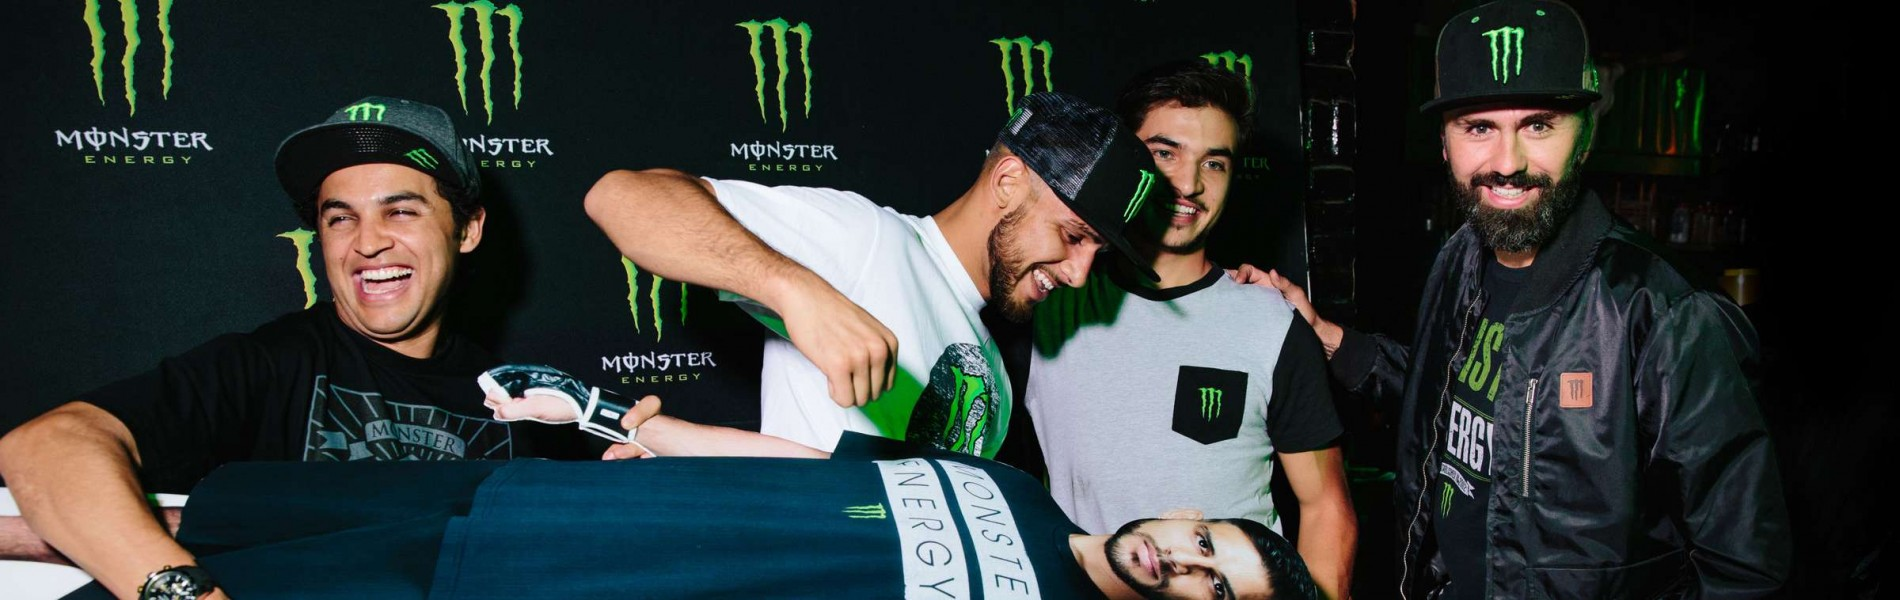 Meet & Greet, Mexico City